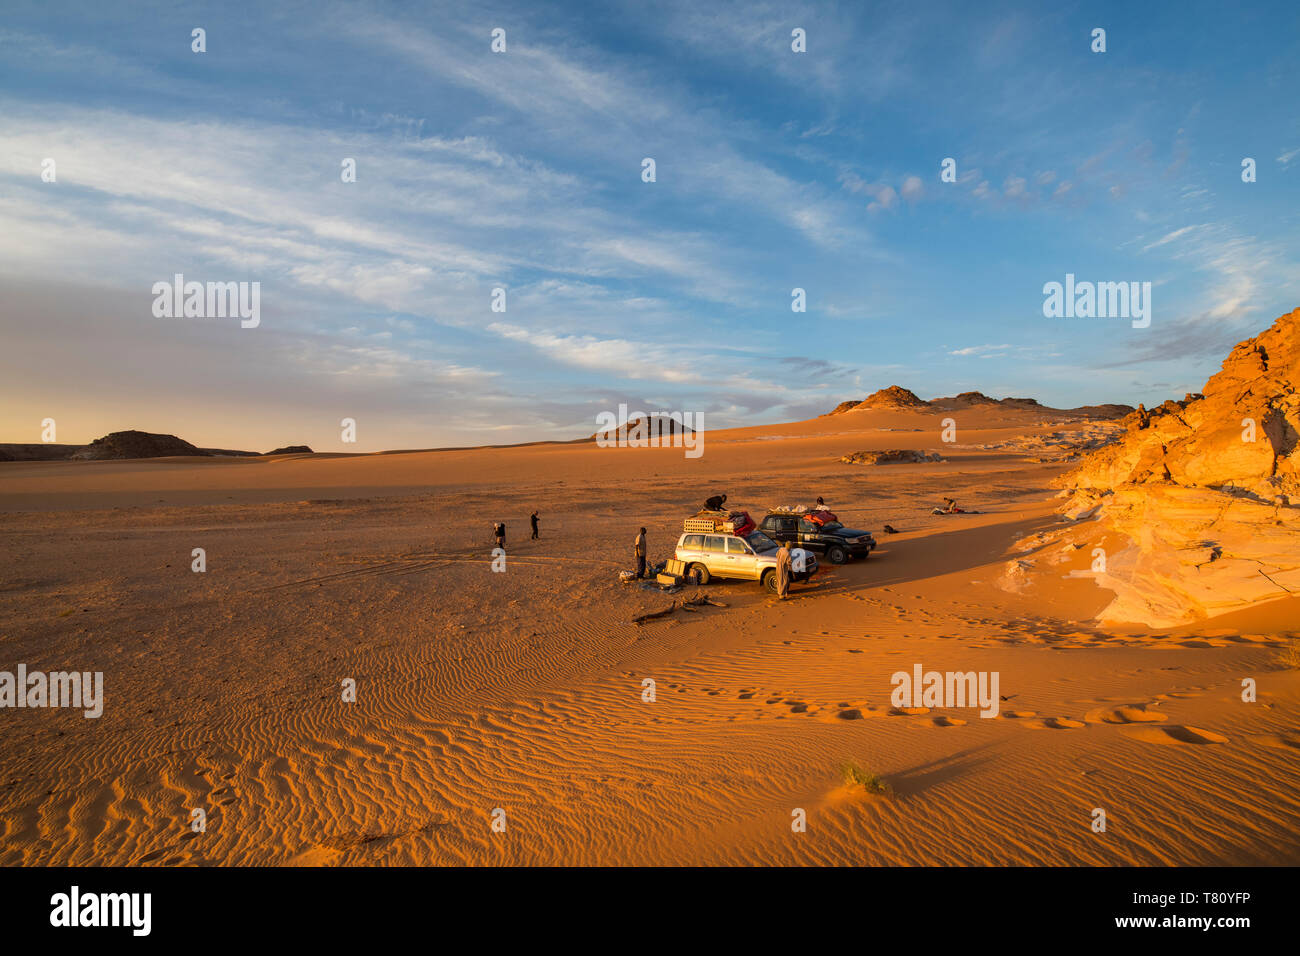 Expedition jeep in Northern Chad, Africa Stock Photo